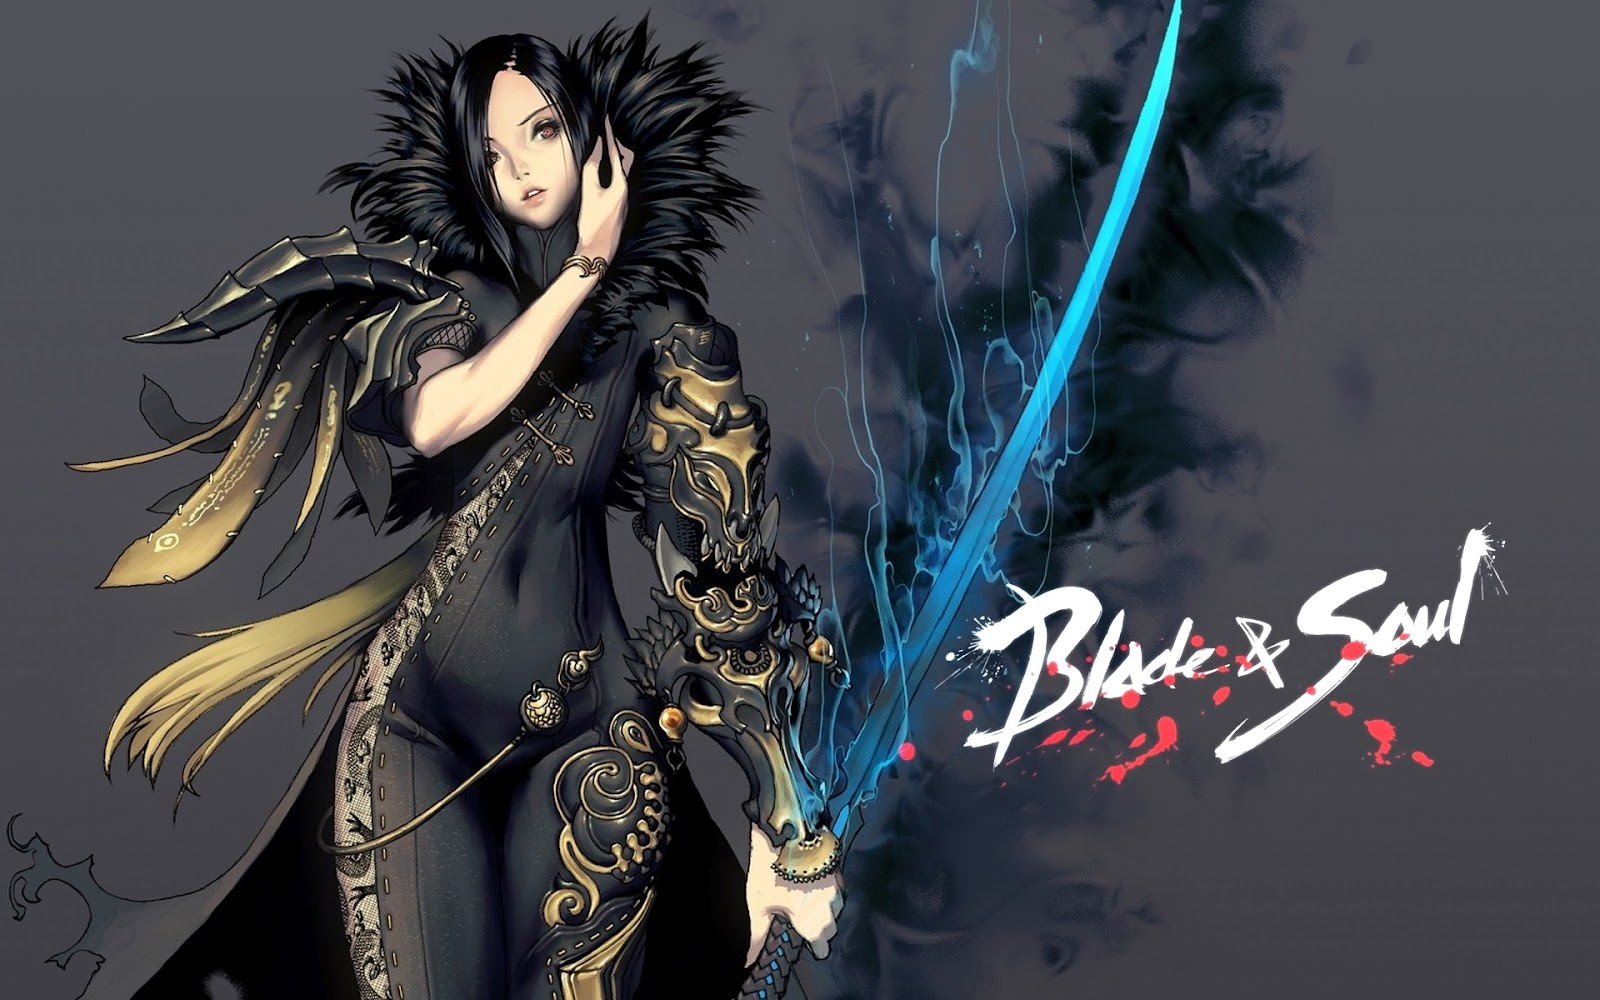 Blade And Soul Wallpaper HD 3 1377030176jpg 1600x1000